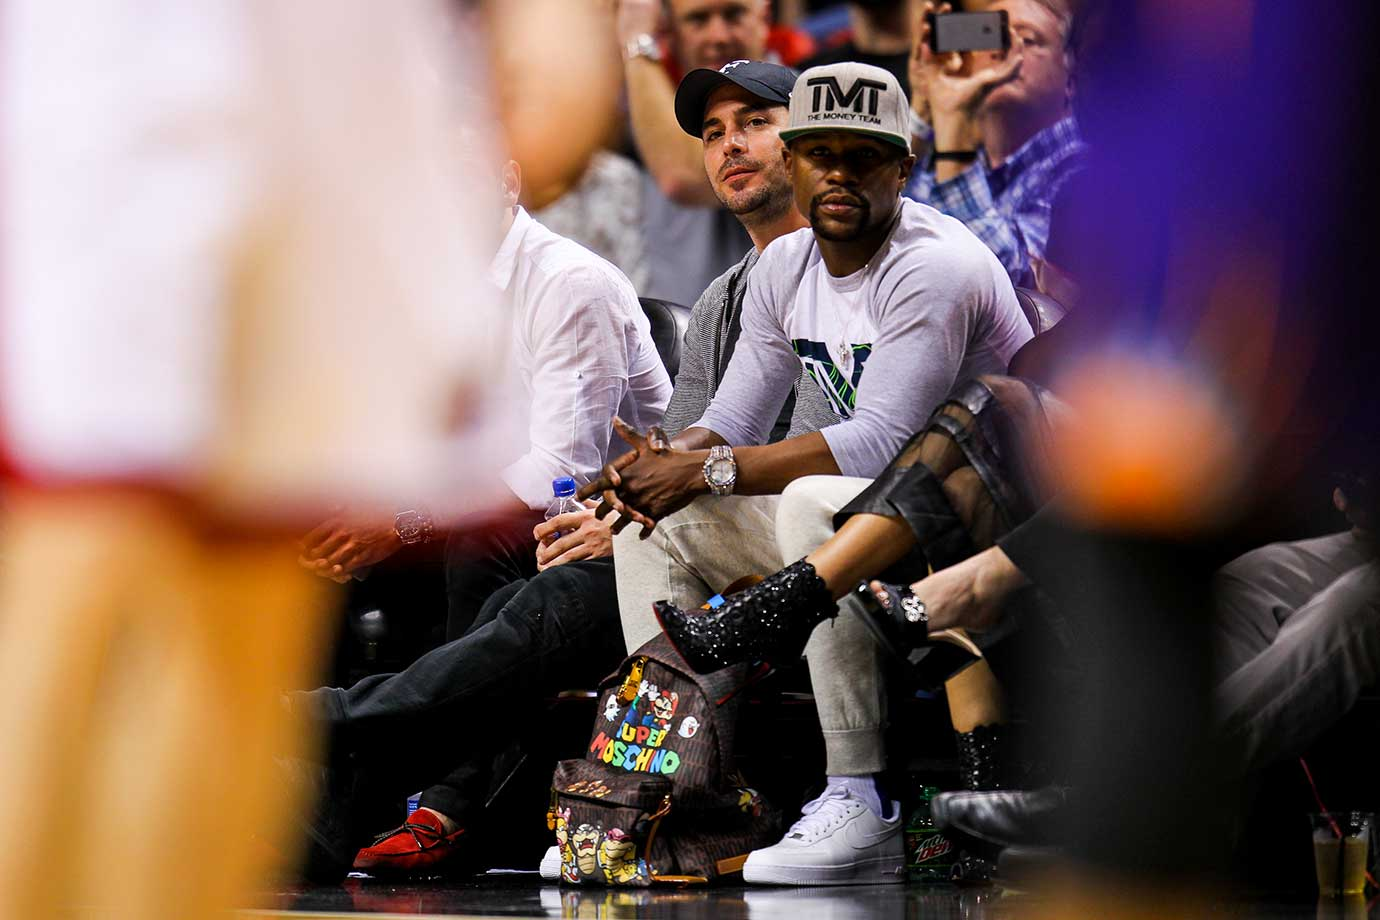 Floyd Mayweather Jr. watches the game between the Miami Heat and the Phoenix Suns.